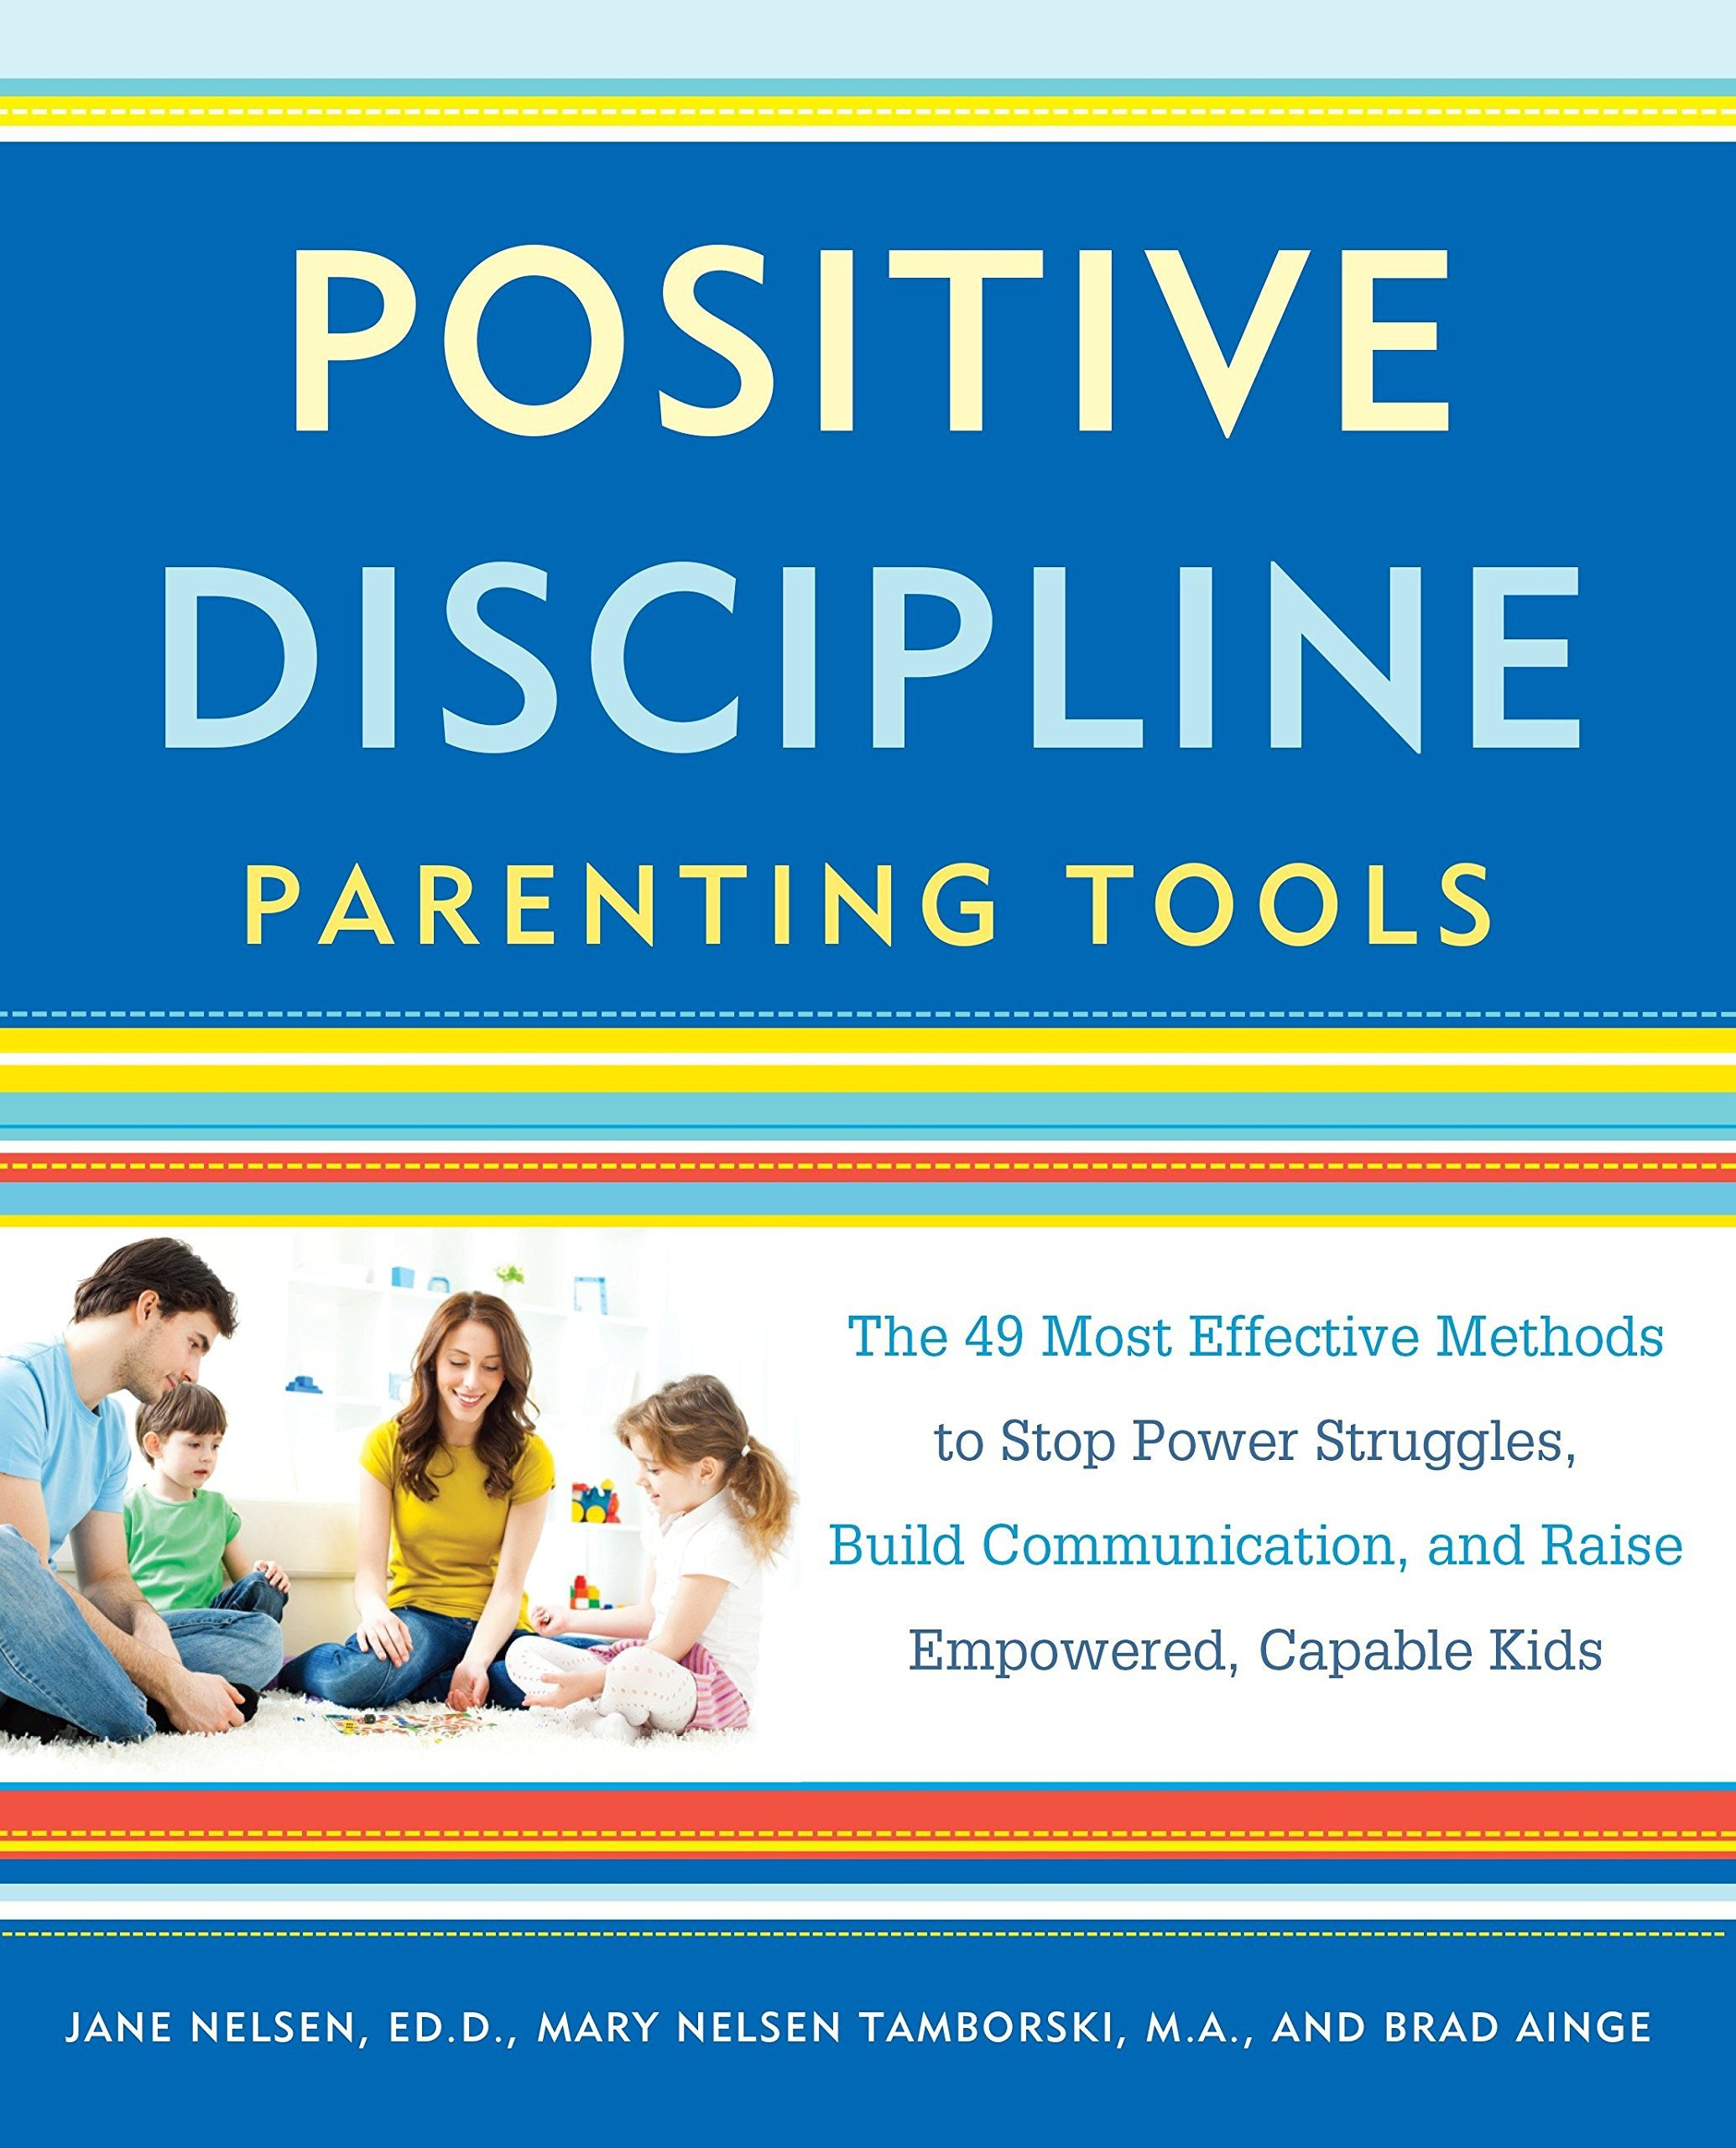 Positive Parenting Worksheets Positive Discipline Parenting tools the 49 Most Effective